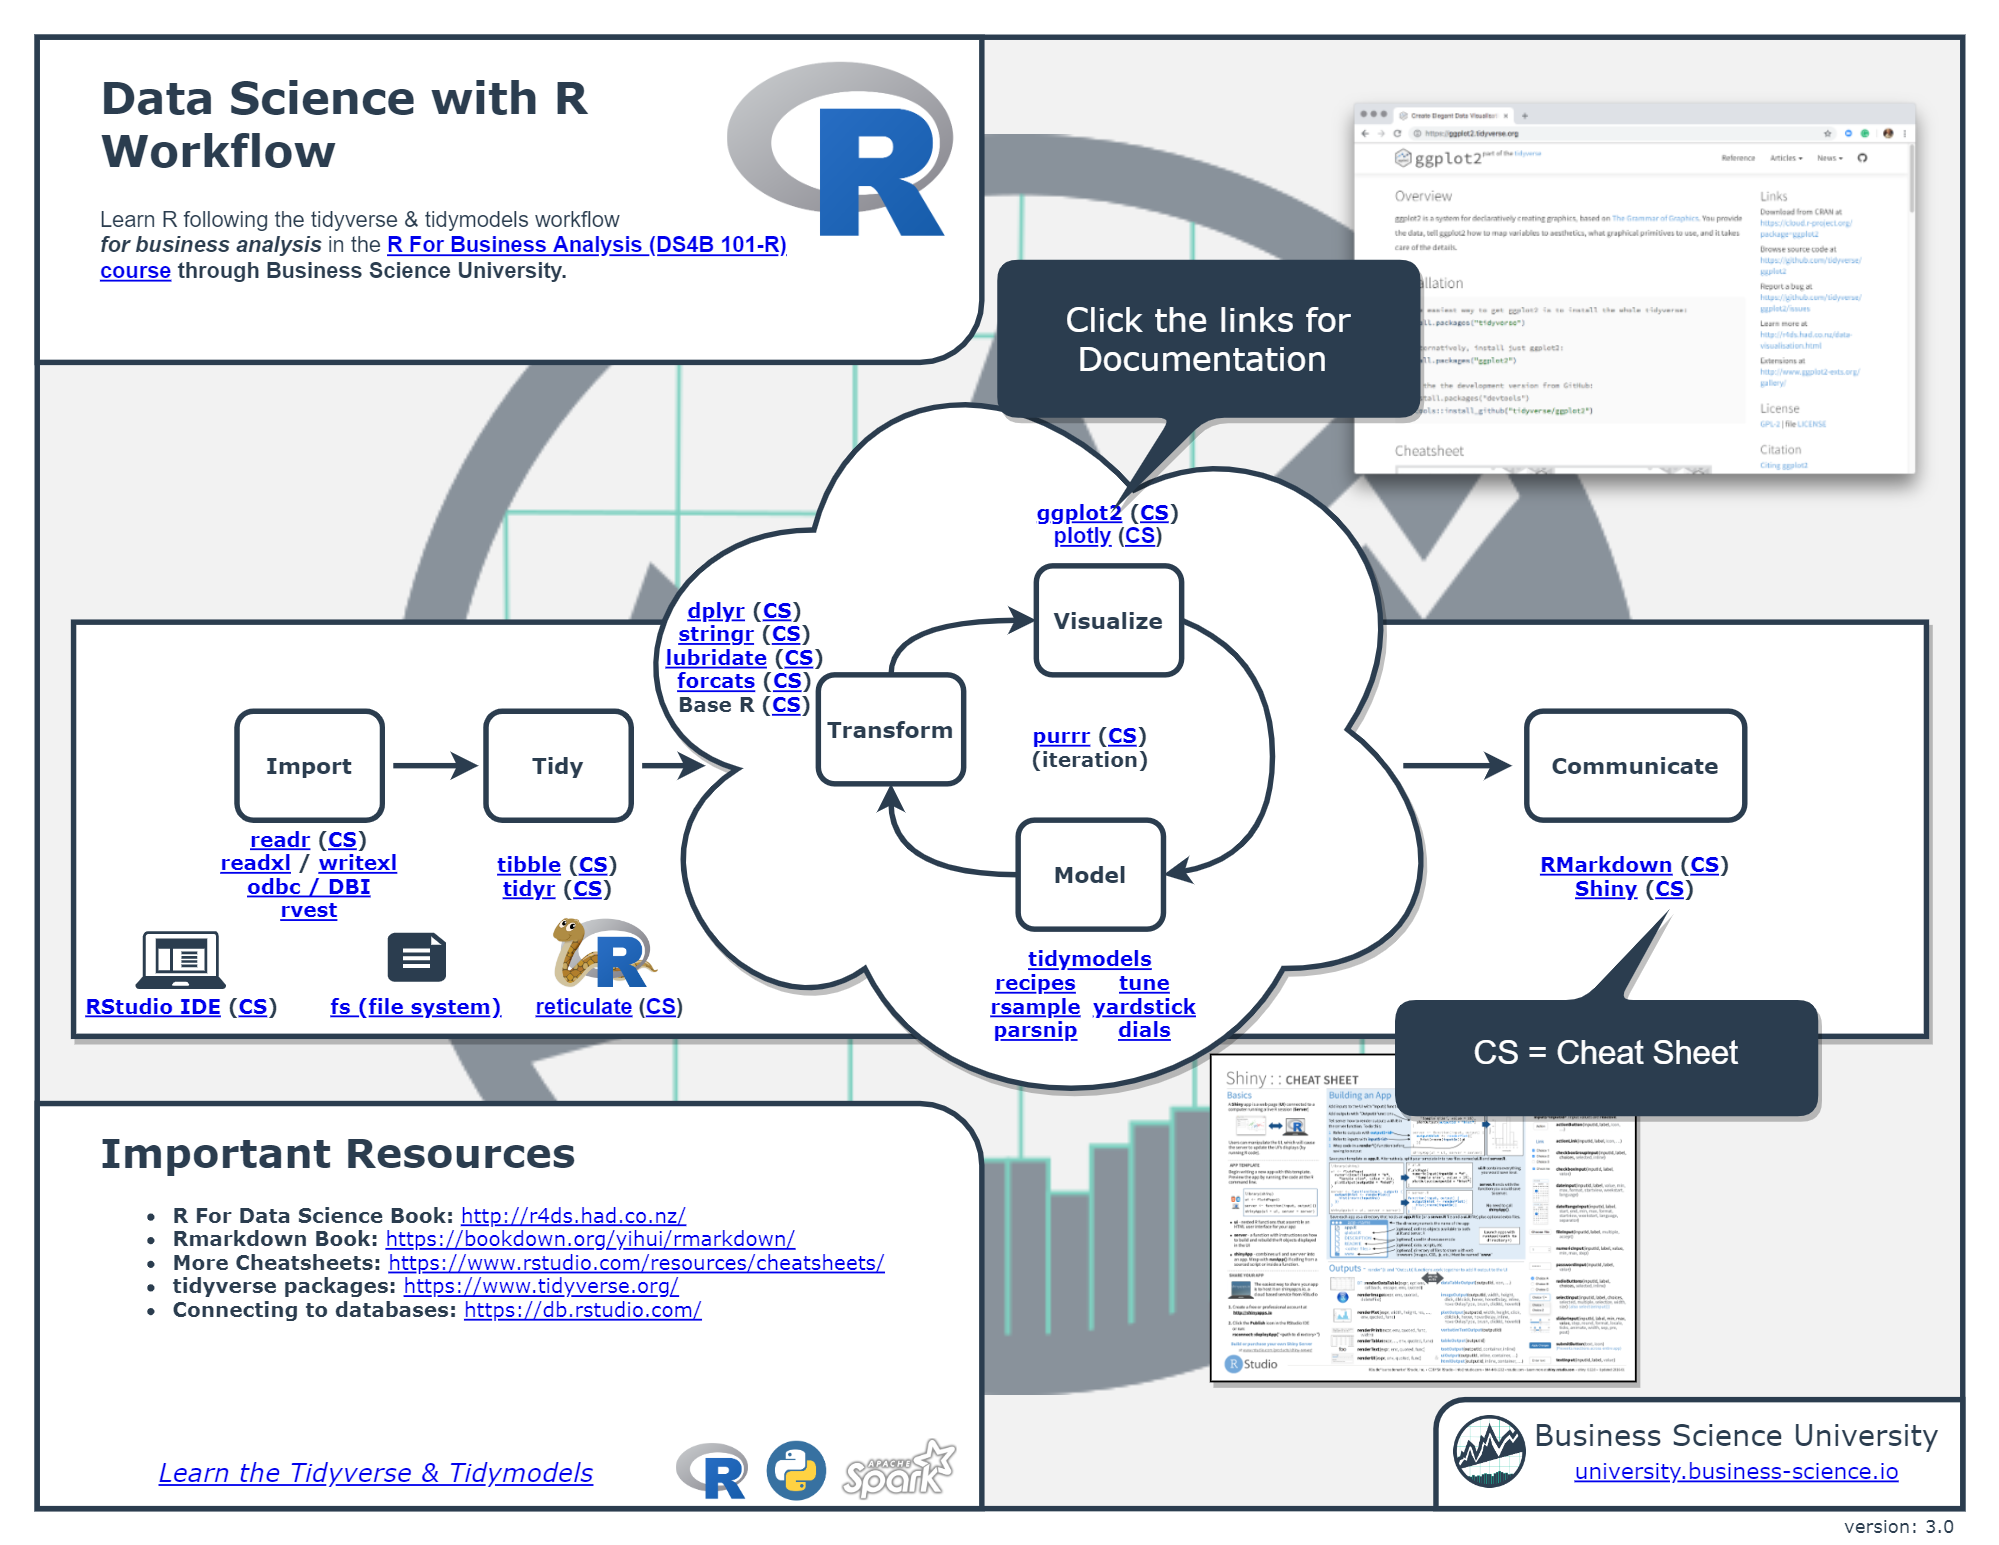 Data Science with R Workflow